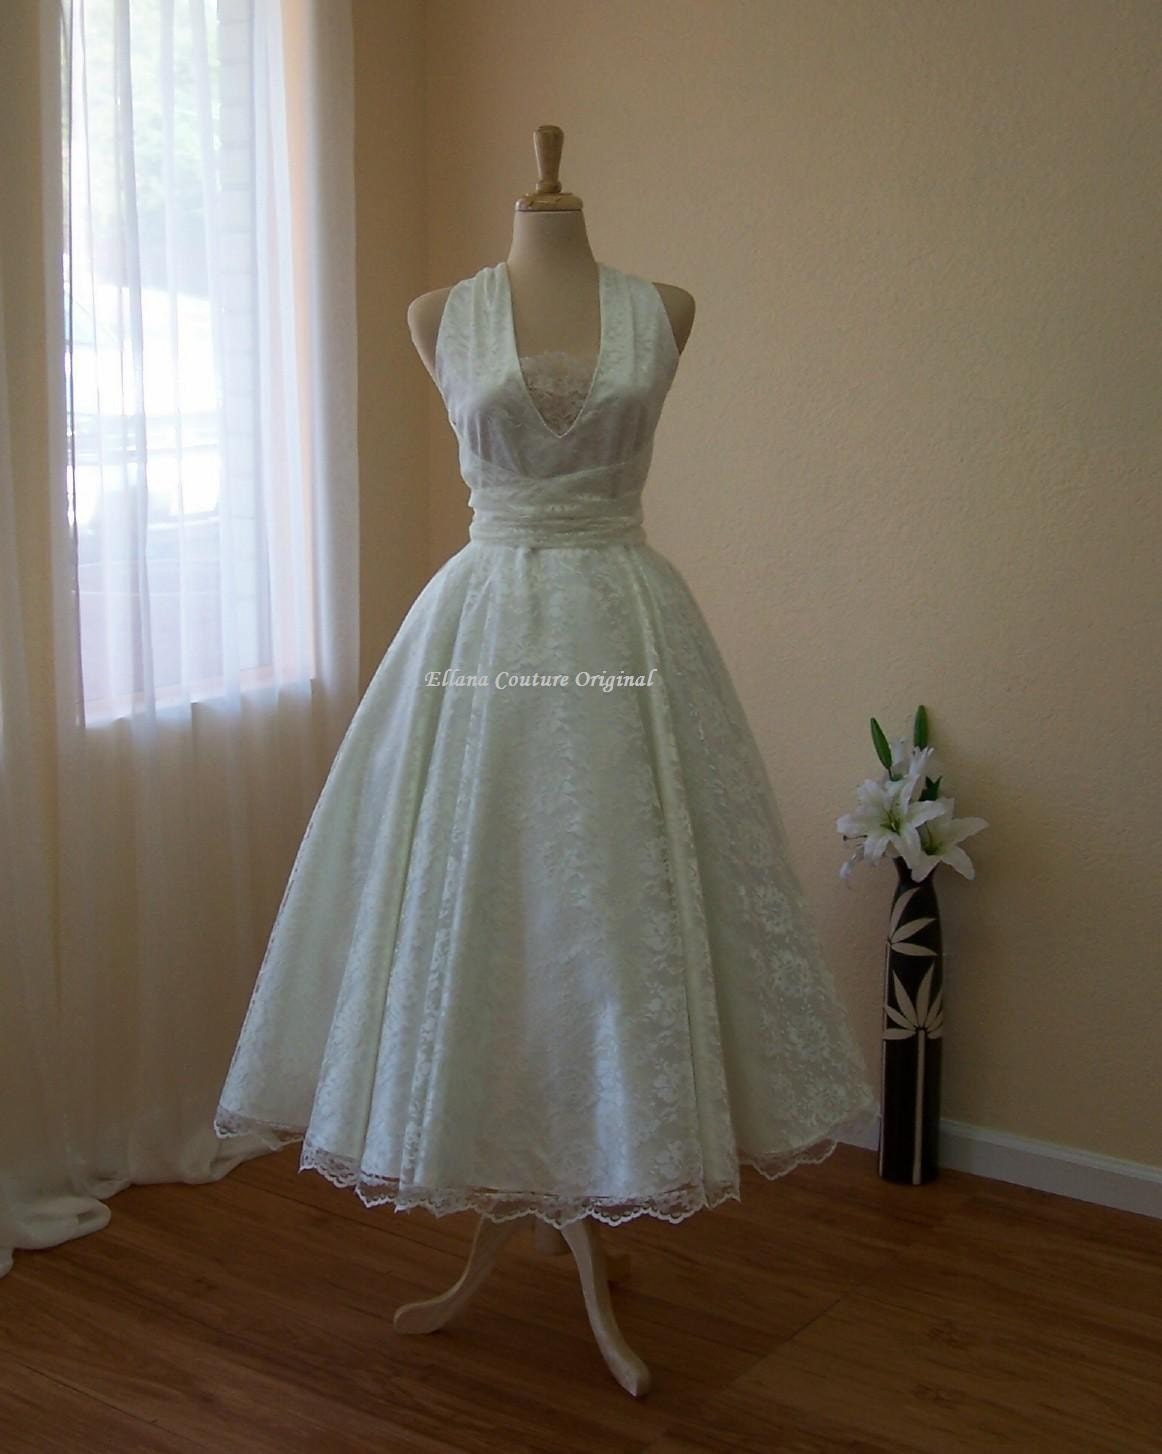 Retro style wedding dress wrap around tea length bridal gown for Retro tea length wedding dresses